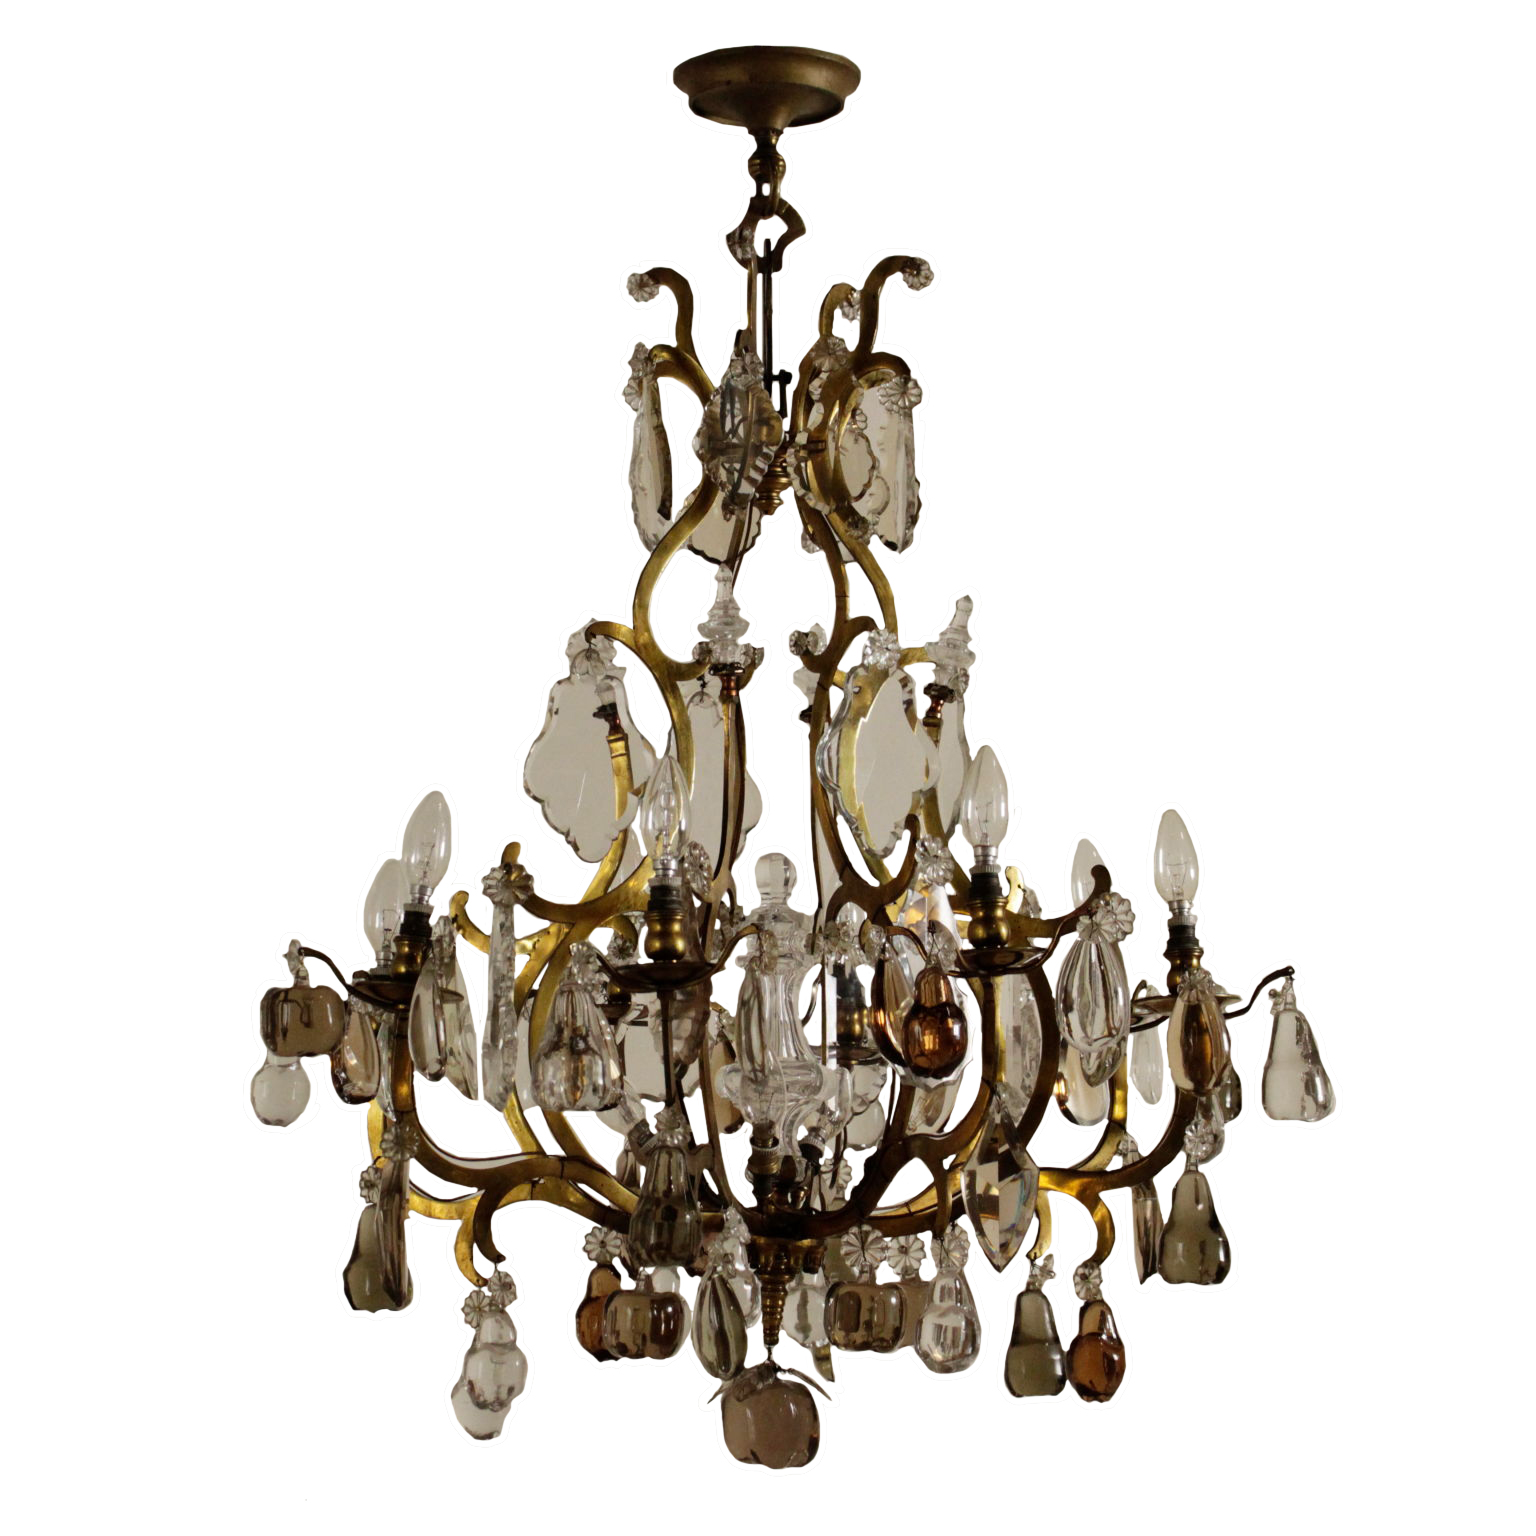 Ceiling lamp with glass fruit chandeliers and lamps antiques chandelier with fruit in the glass aloadofball Choice Image